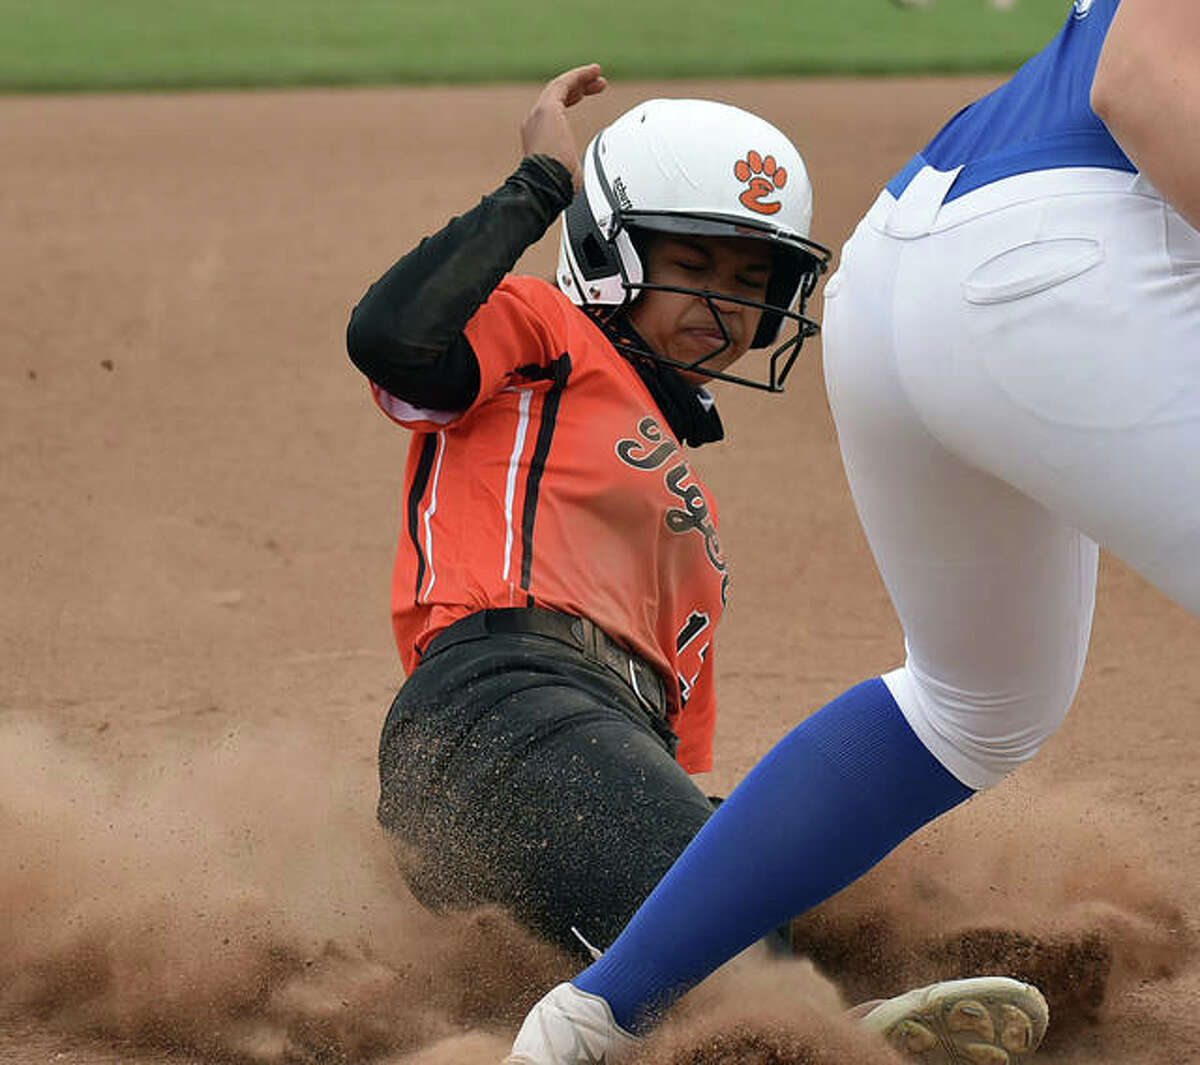 Edwardsville's Zoie Boyd slides safely into third base for a steal in the second inning against Freeburg on Friday.